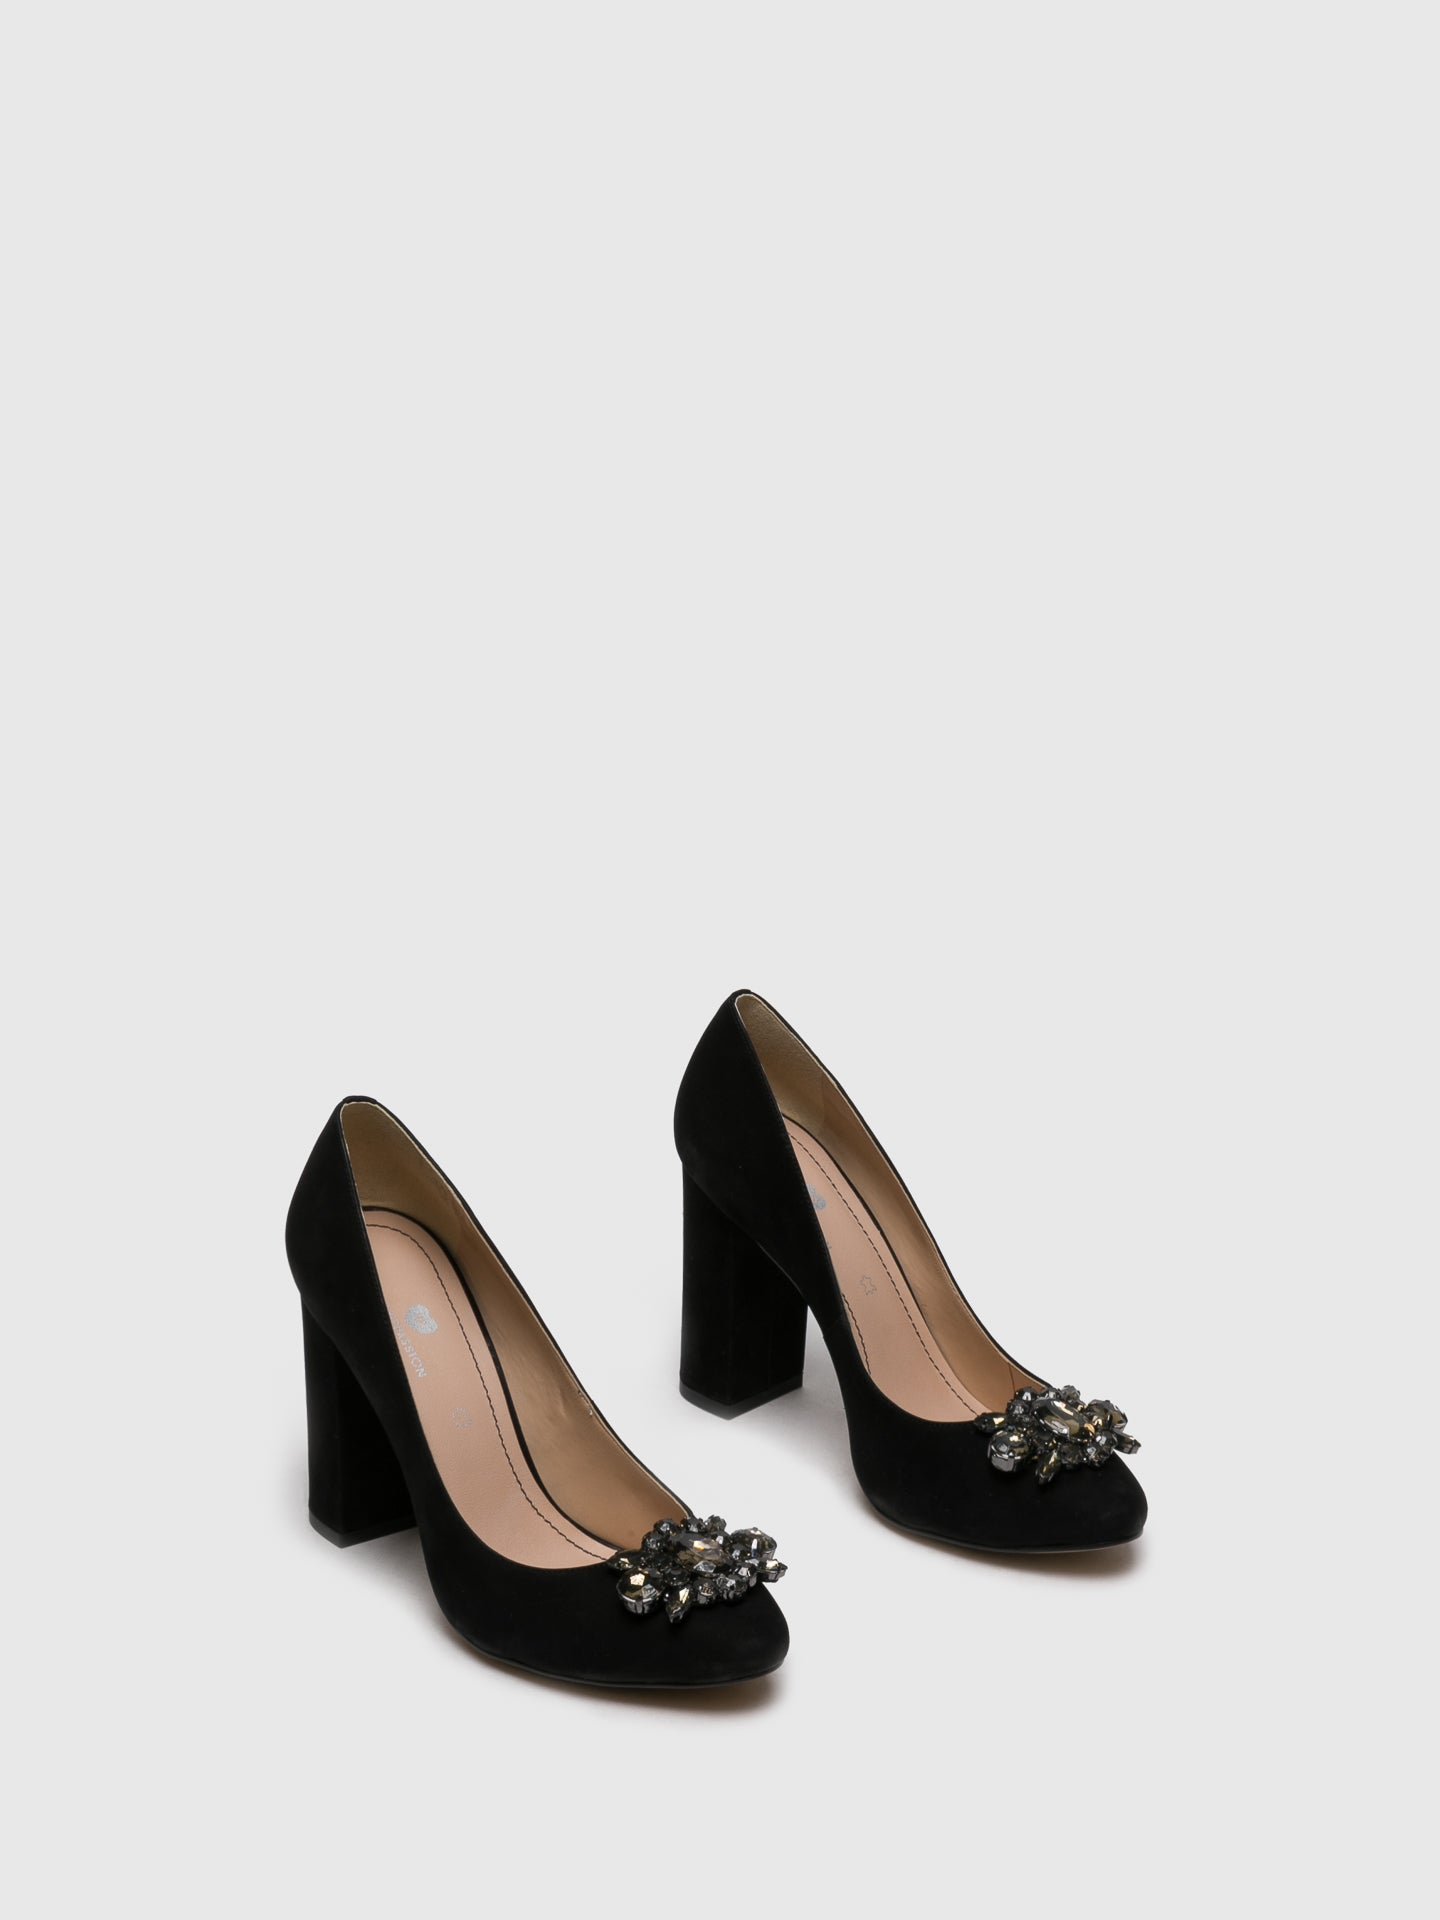 Fly London Damen Pump Pumps: : Schuhe & Handtaschen